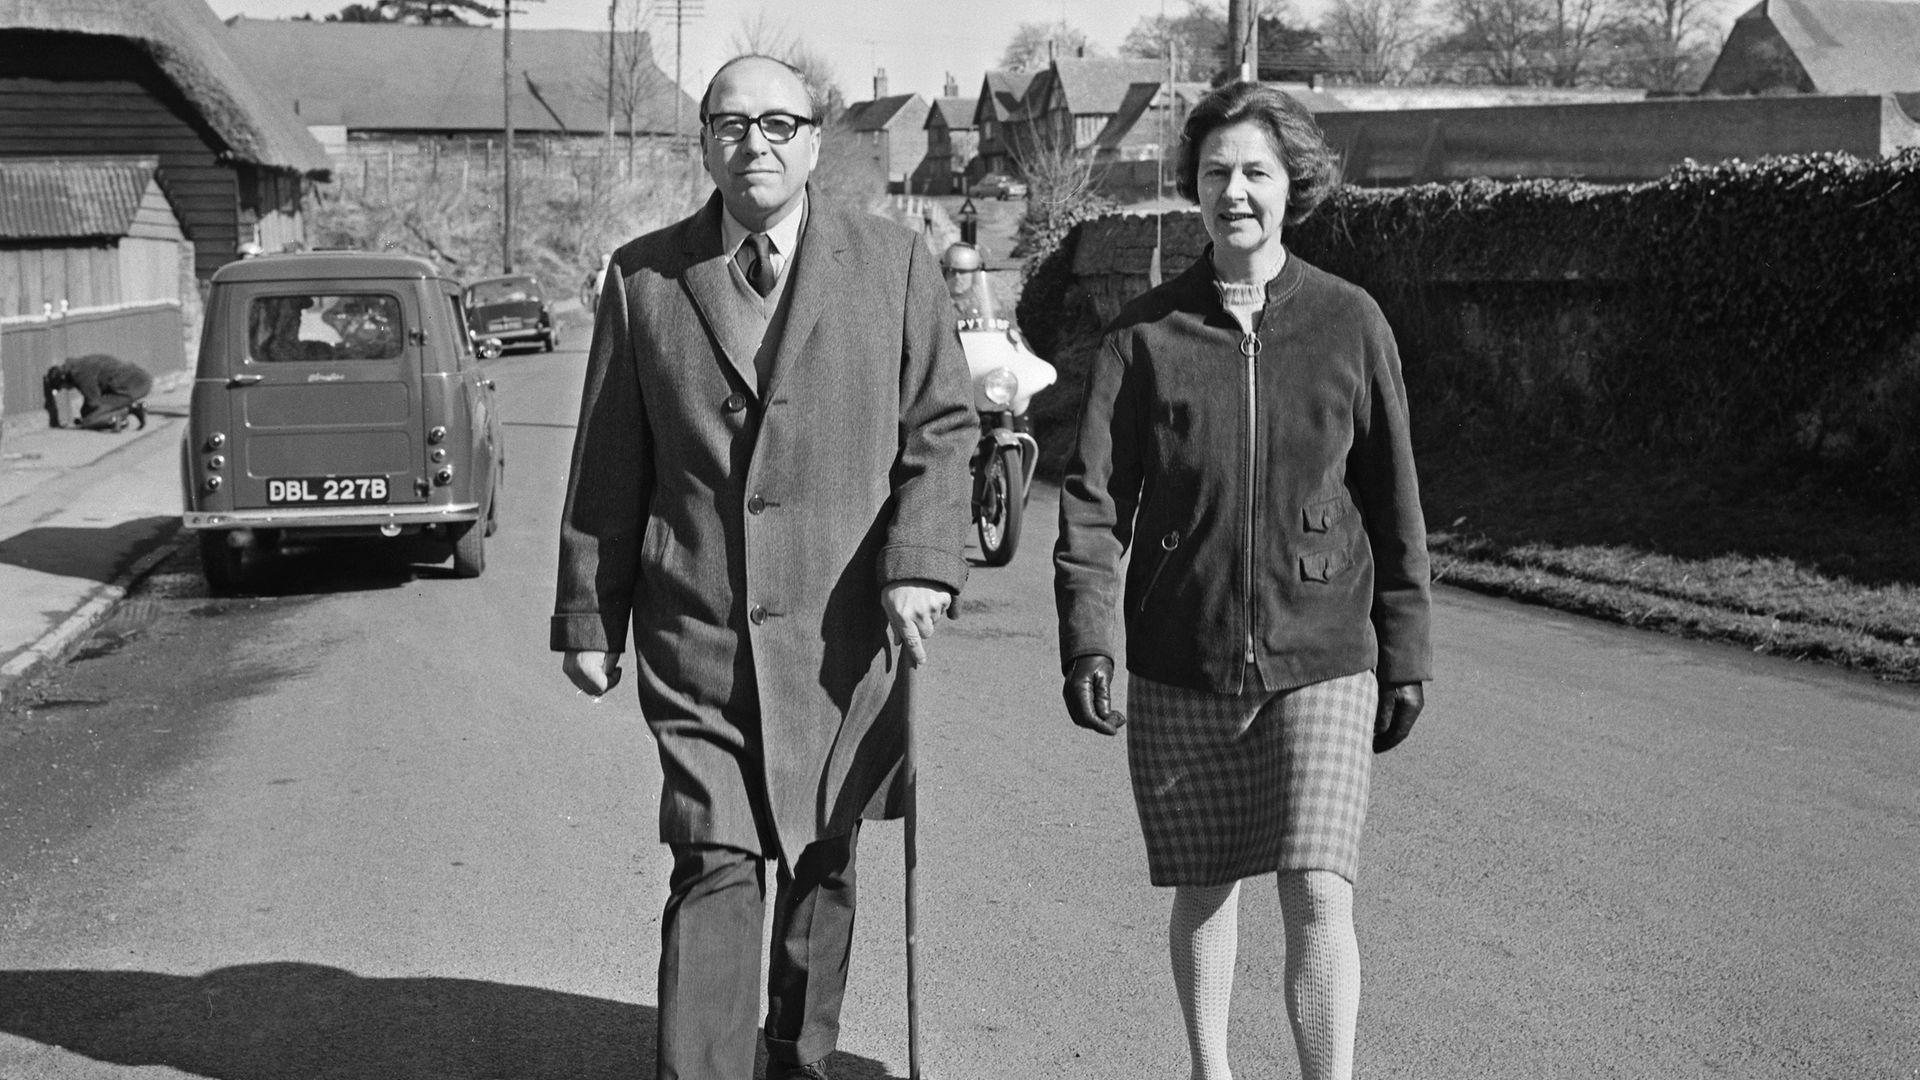 British Labour Party, SDP and Liberal Democrat politician and author Roy Jenkins (1920 - 2003) with his wife Jennifer, UK, 18th March 1968. (Photo by Reg Burkett/Daily Express/Getty Images) - Credit: Getty Images